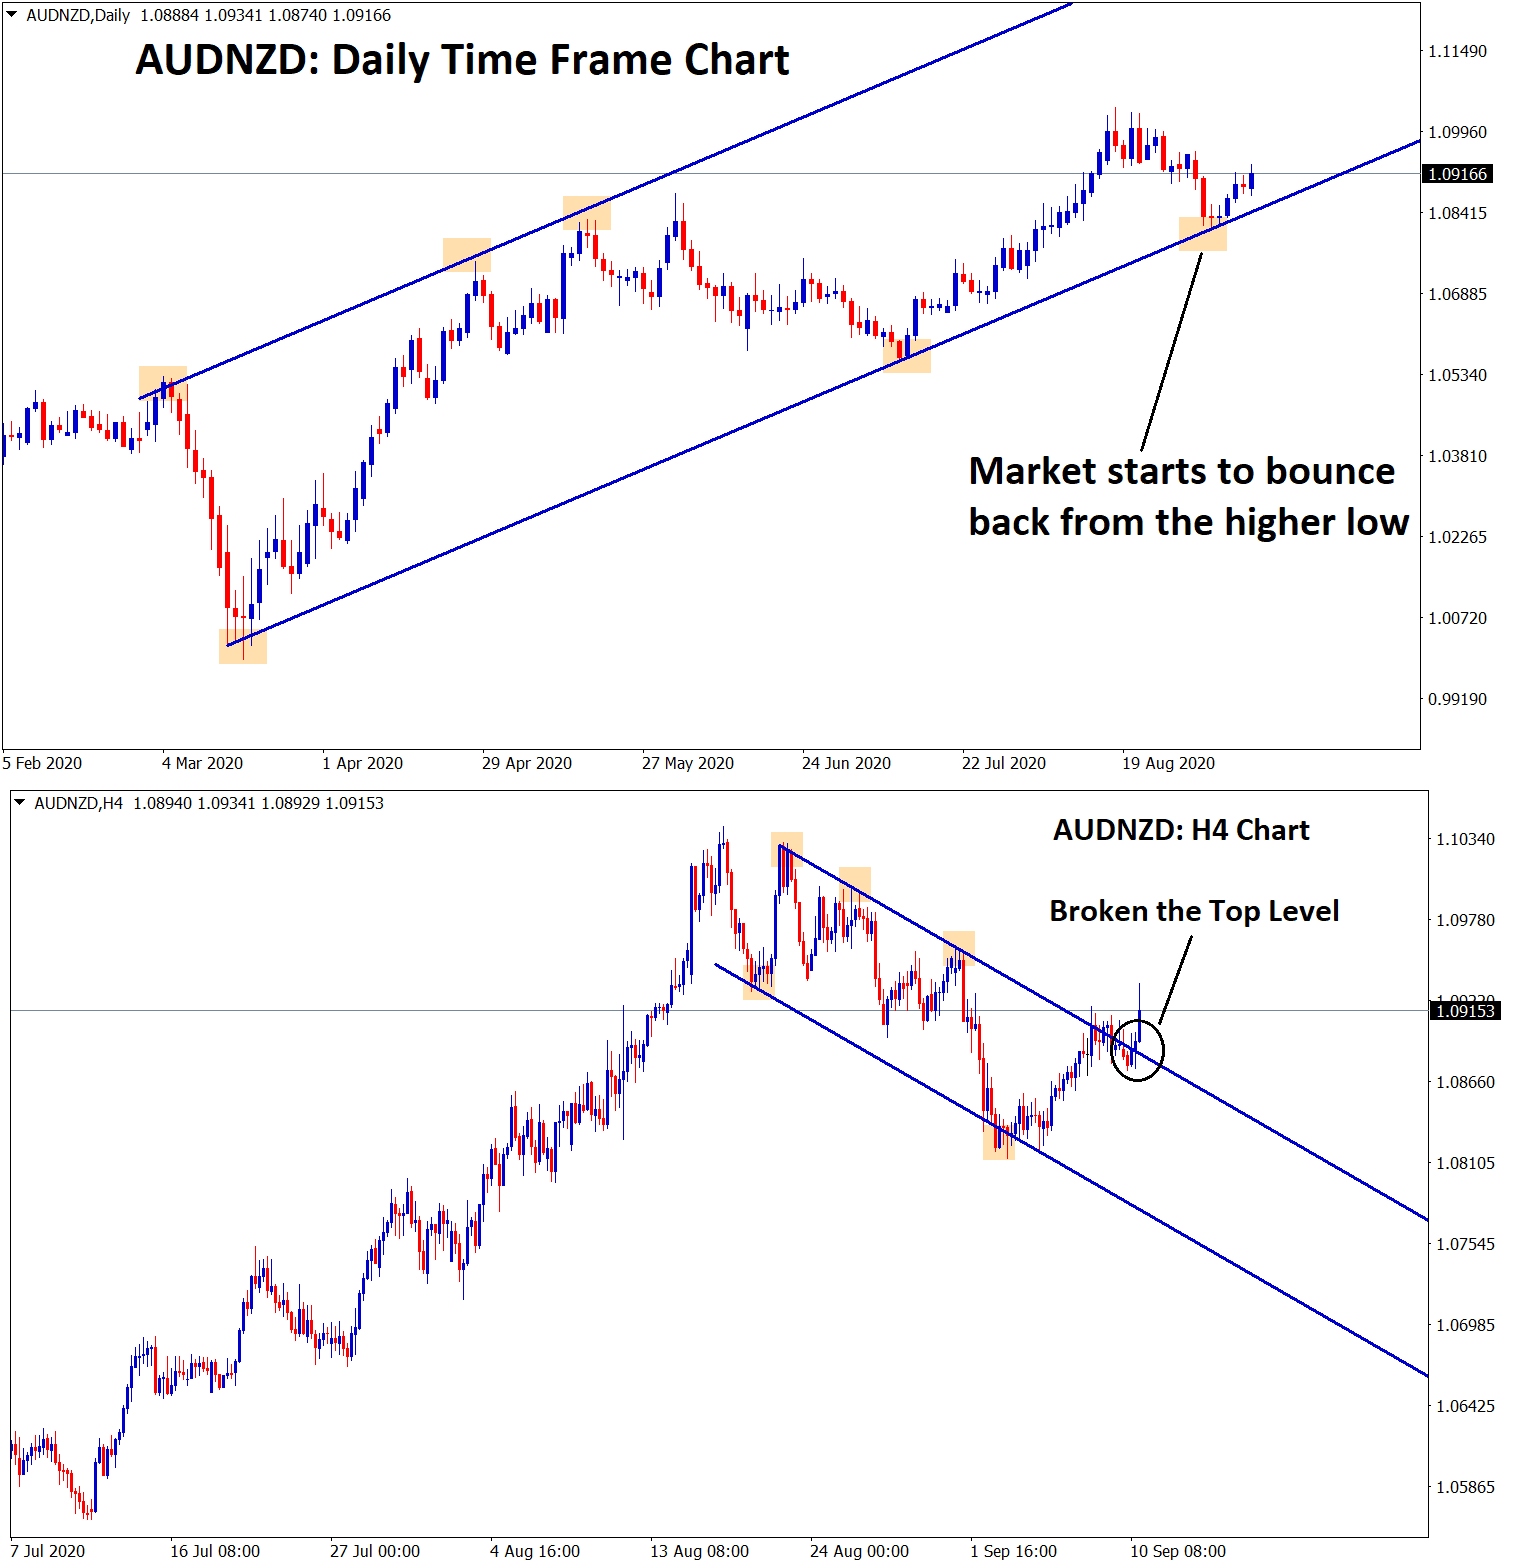 AUDNZD reversal from the higher low